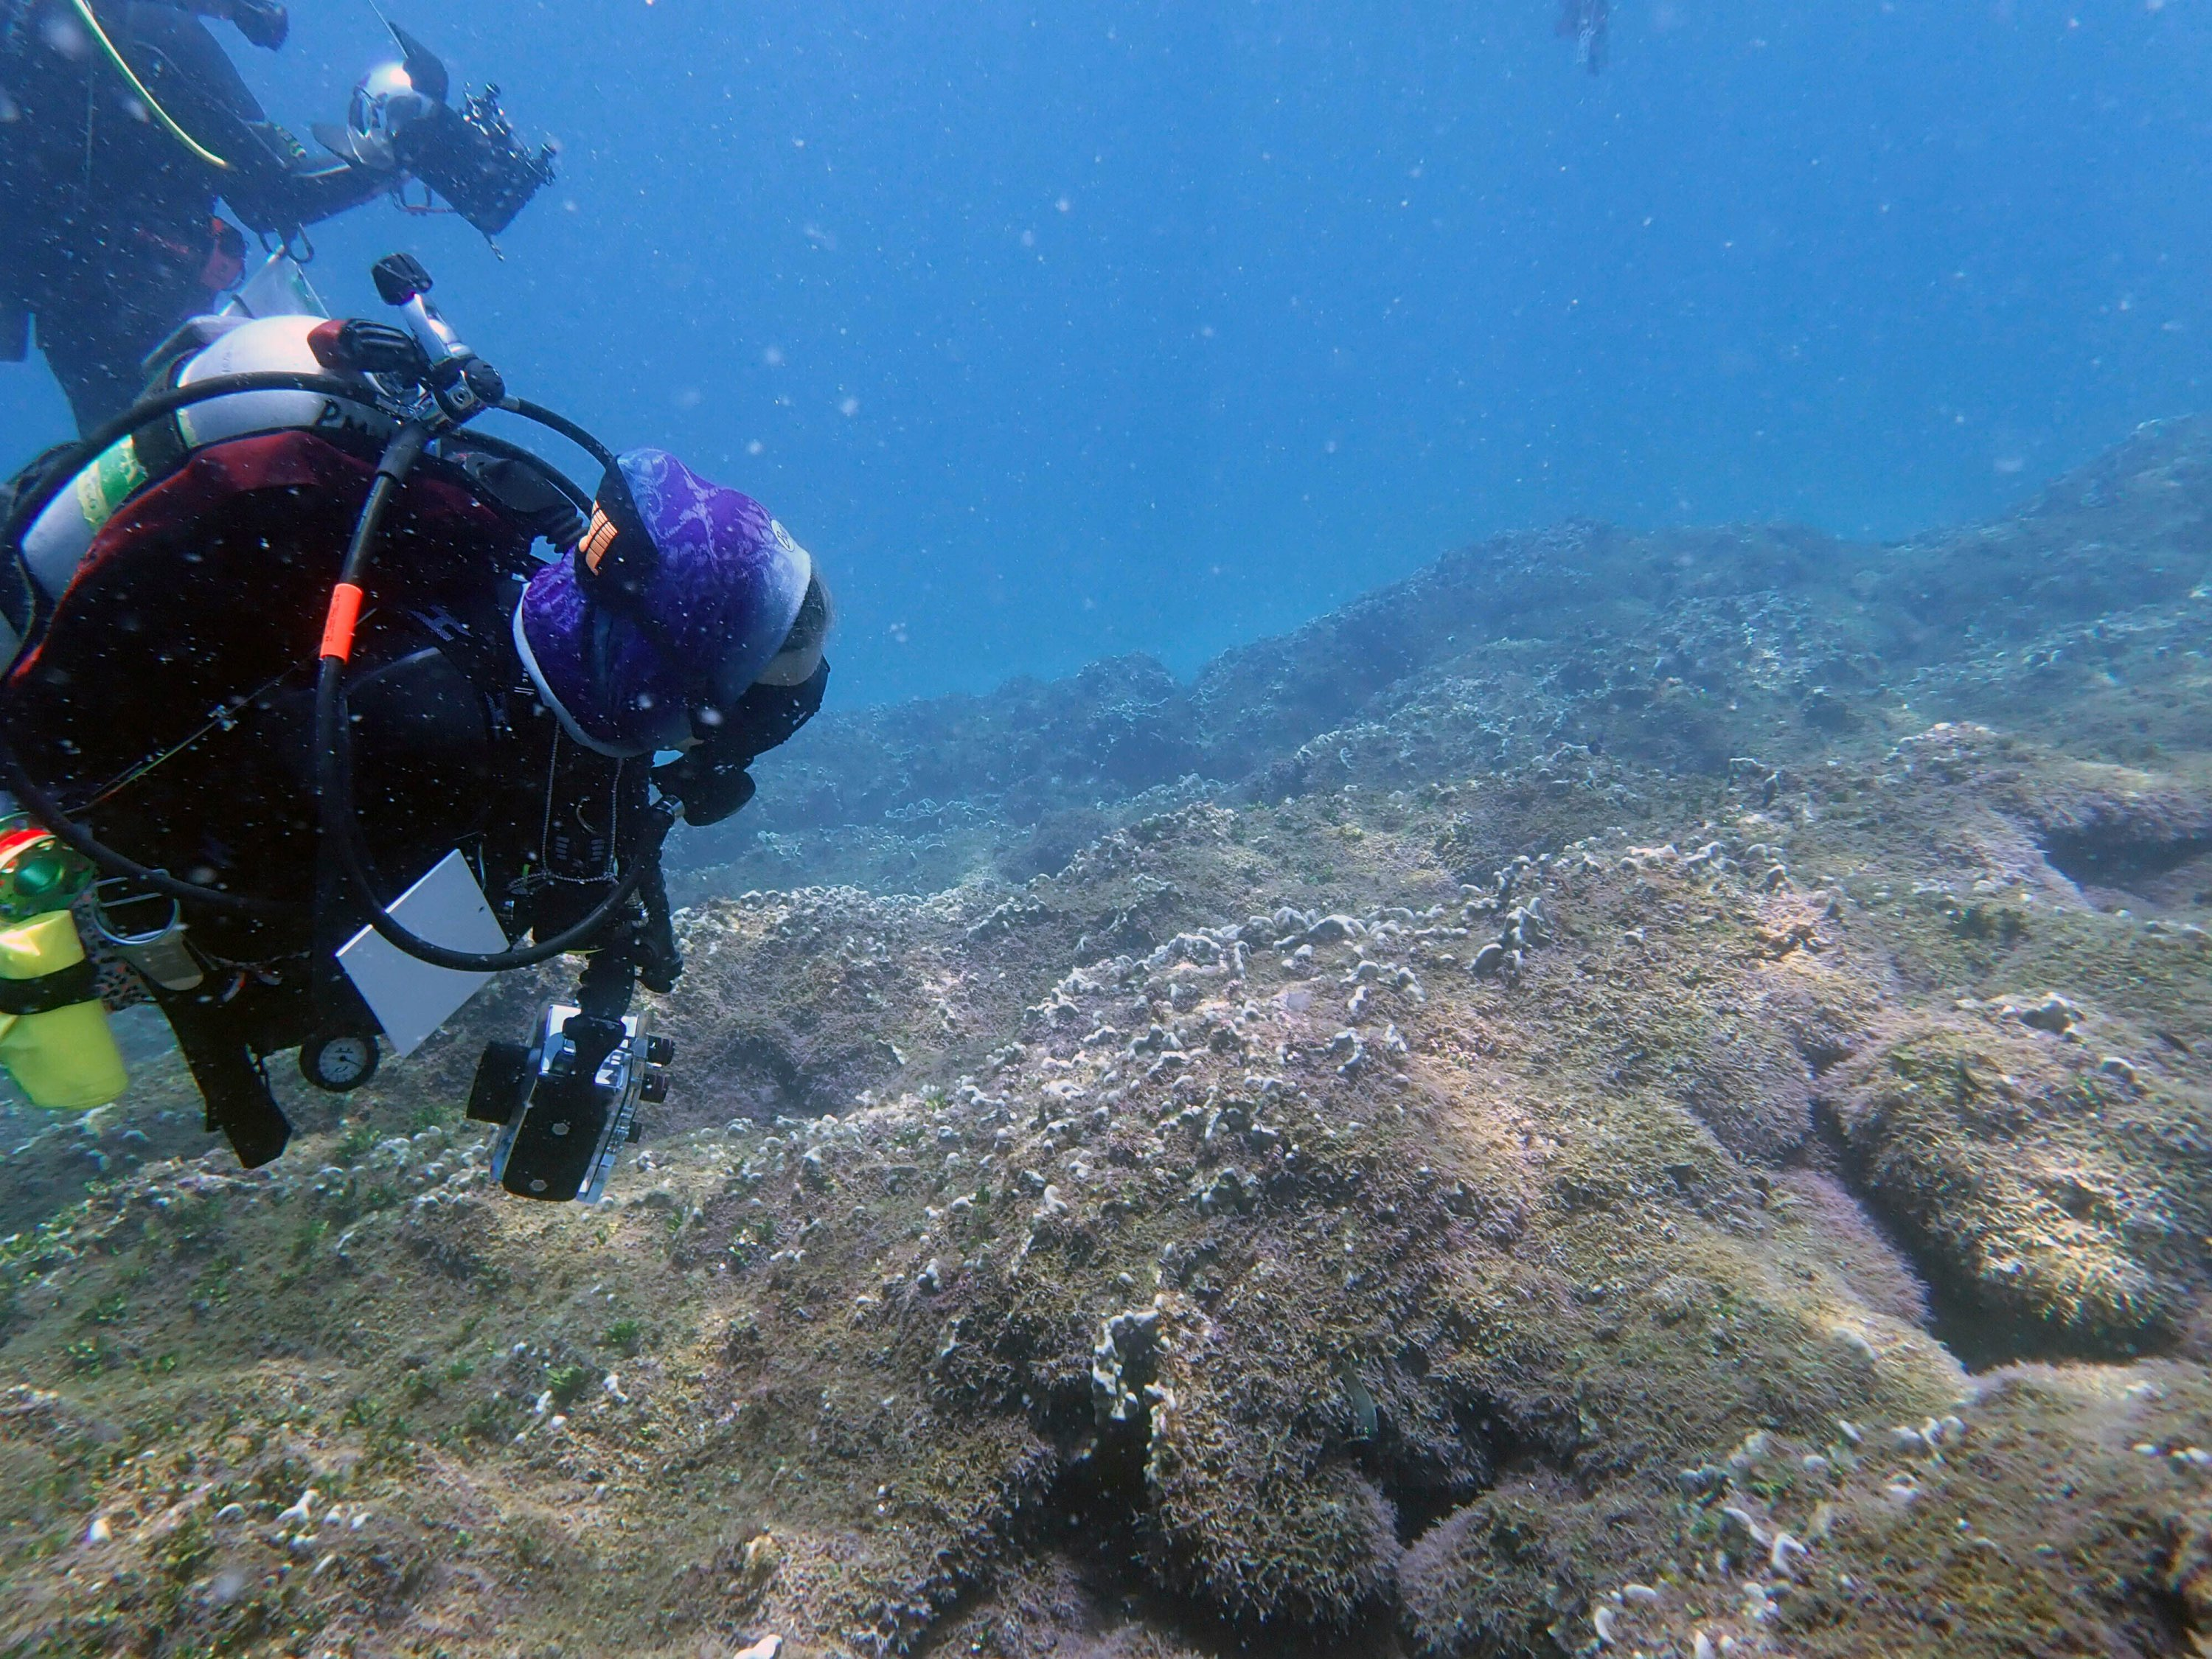 Divers look at a new species of seaweed covering a coral reef at Pearl and Hermes Atoll in the remote Northwestern Hawaiian Islands on Aug. 9, 2019. (Heather Spalding/College of Charleston via AP)